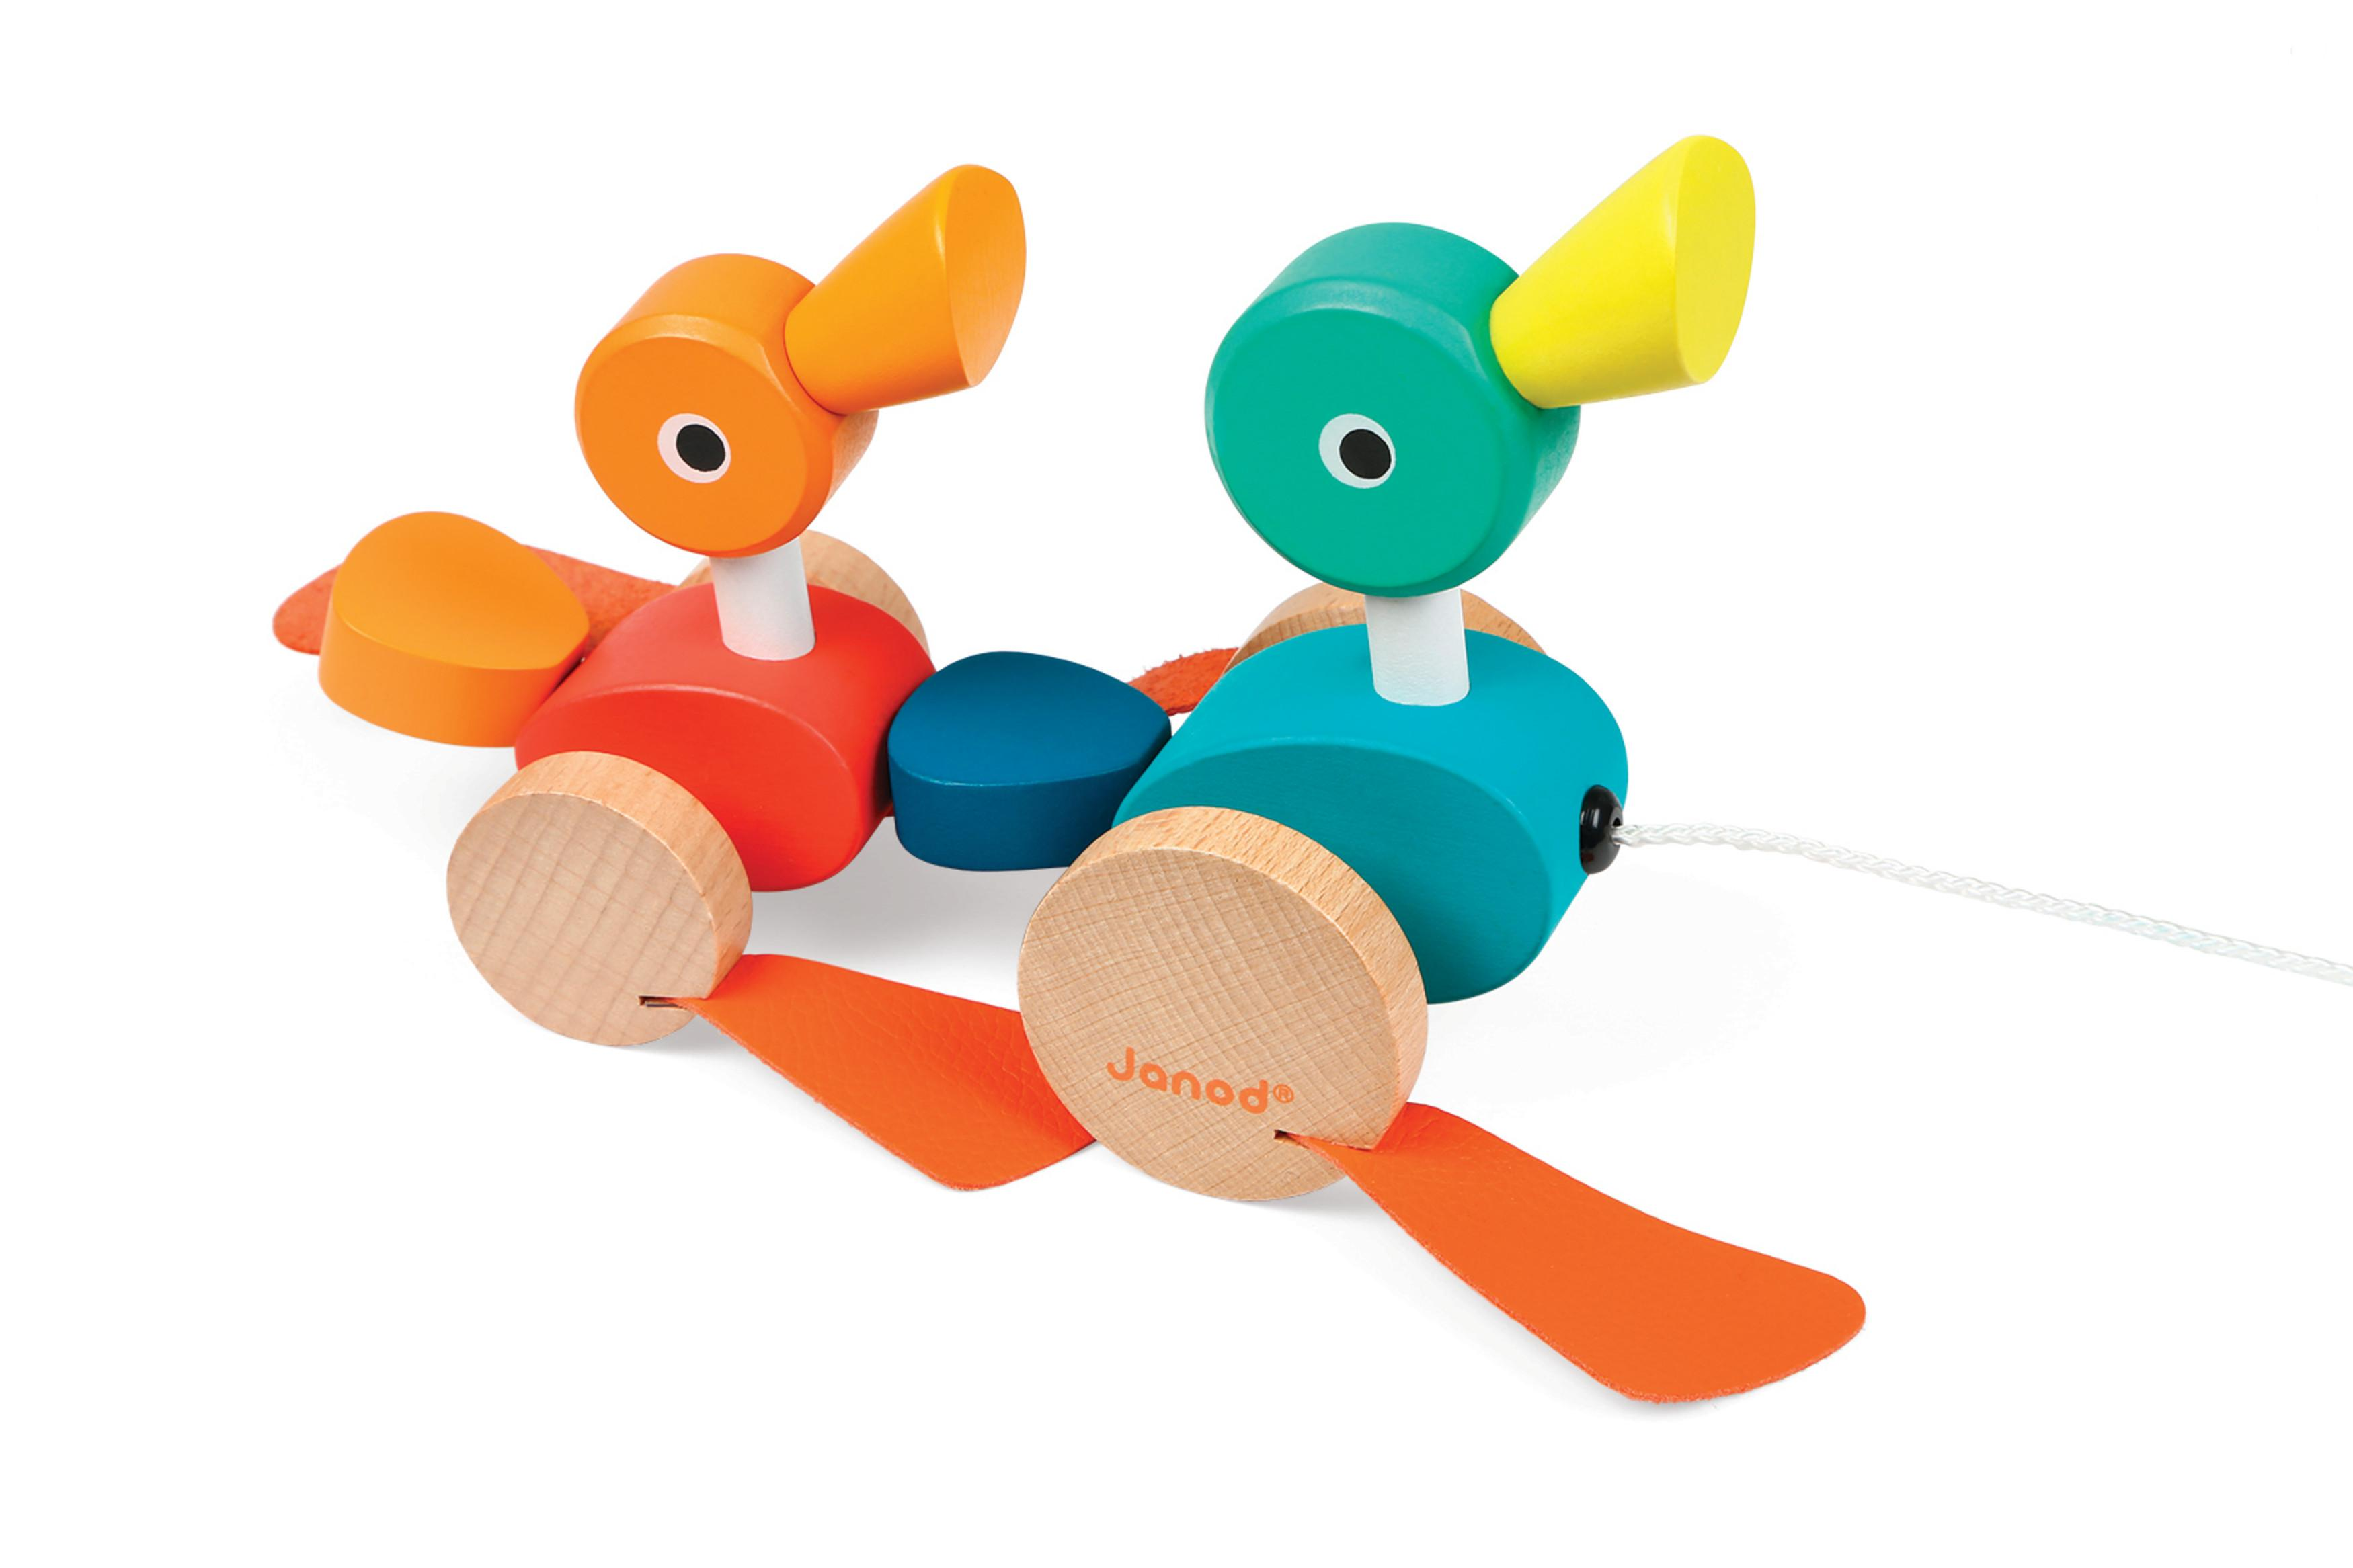 Amazon Janod Duck Family Pull Along Toy Toys & Games